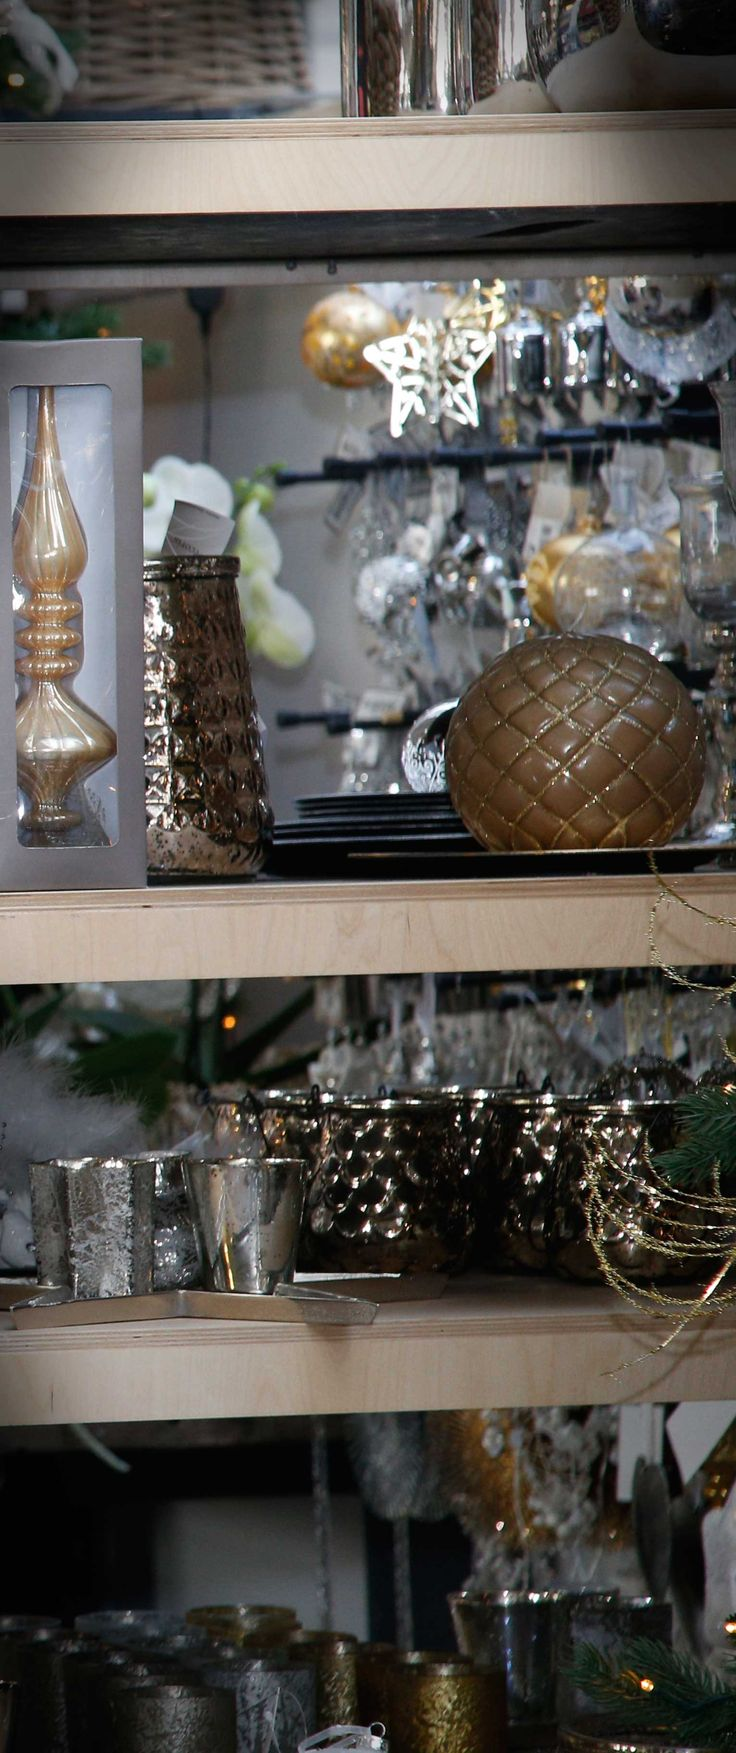 Every details you need to create a cosy atmosphere. #Agricola #ChicCollection #ChristmasTime